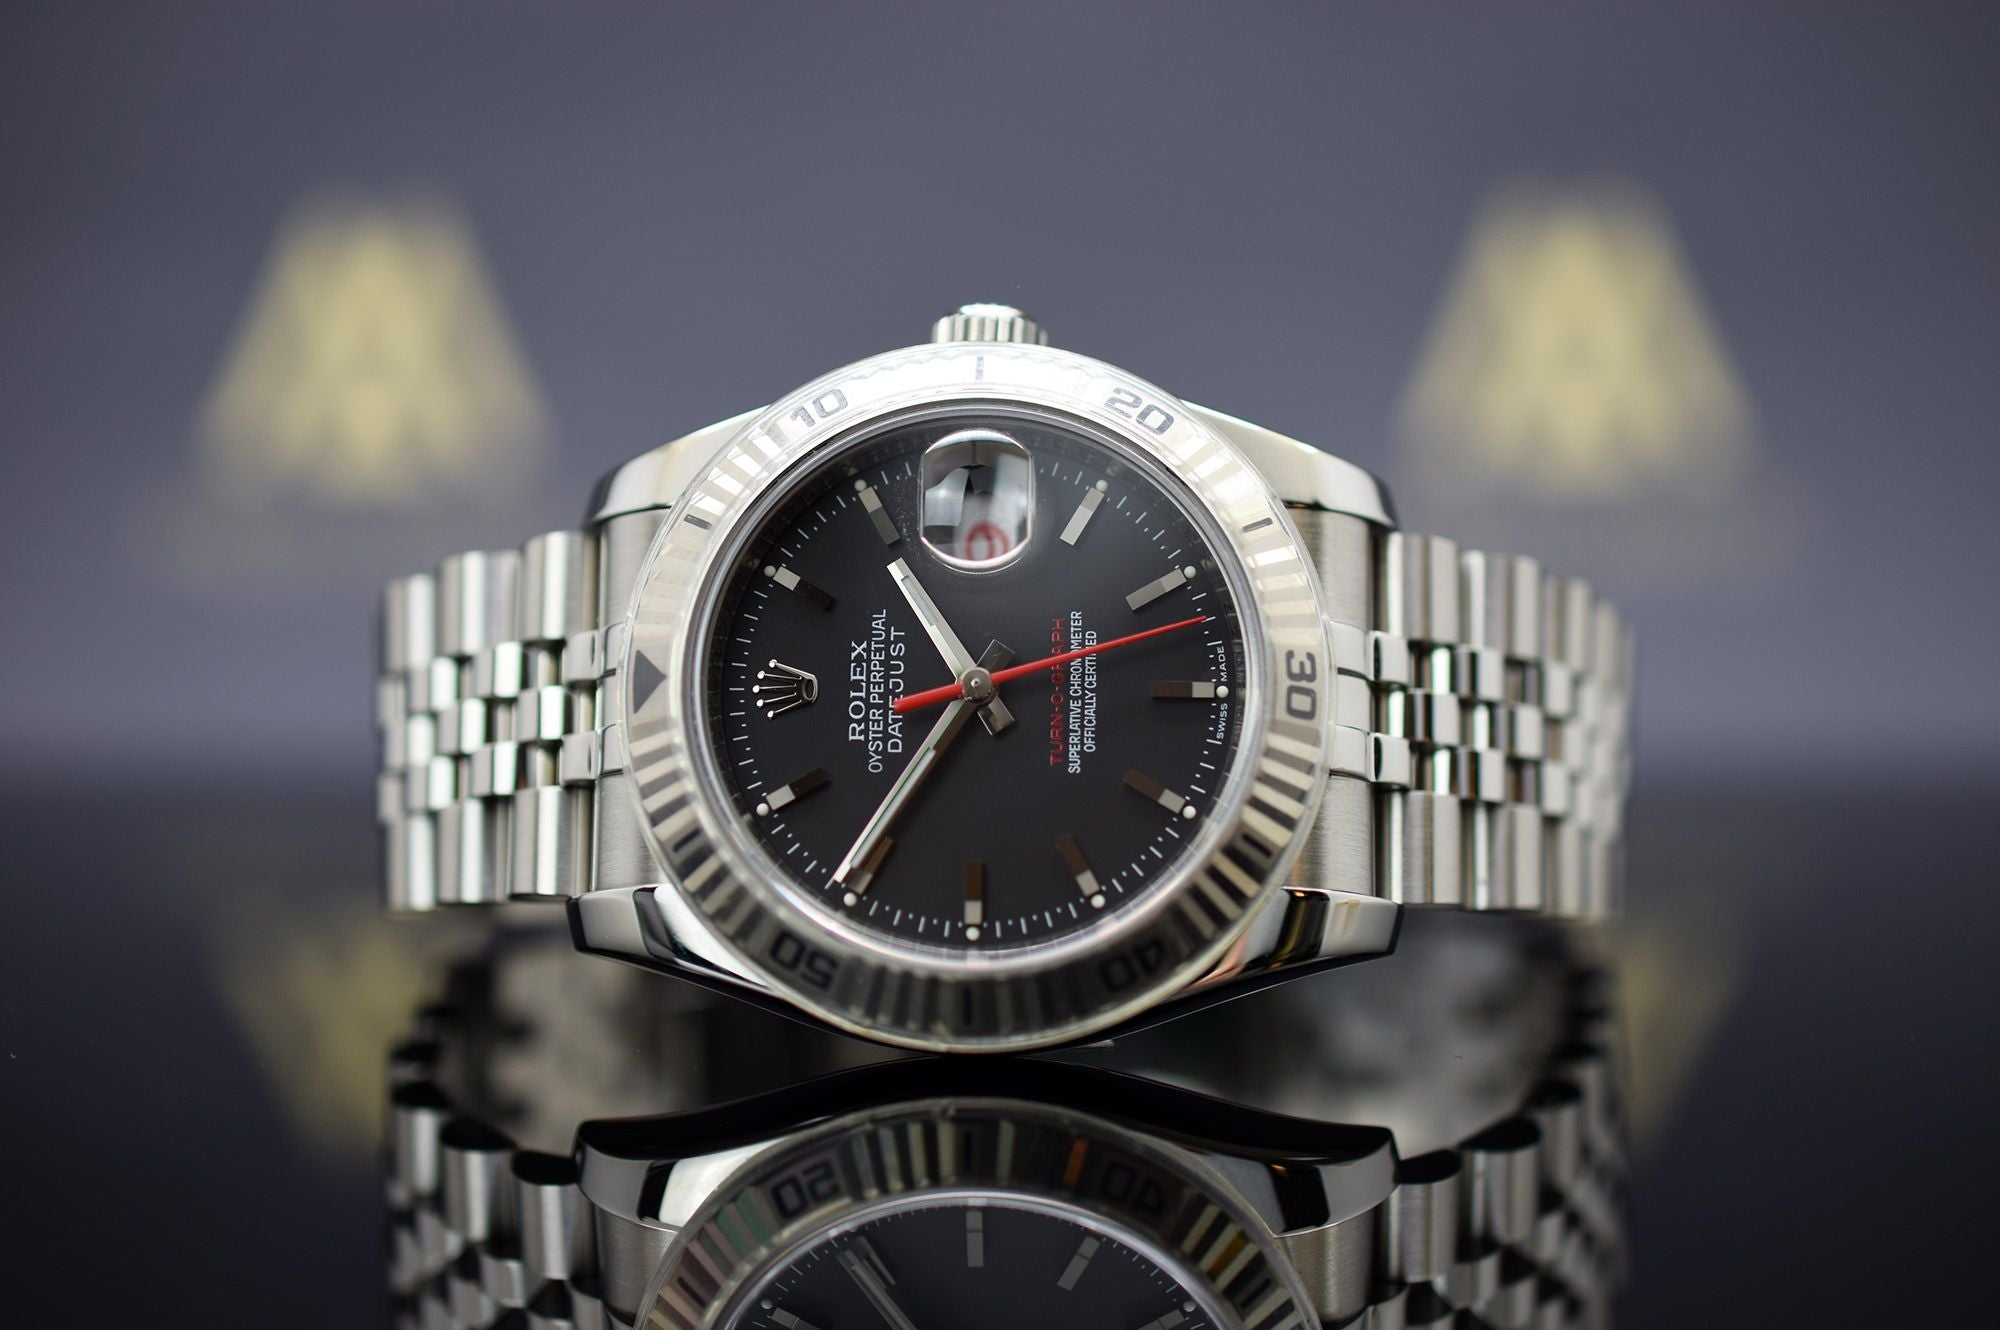 Rolex Oyster Perpetual Datejust Turn-O-Graph - Aus 2007